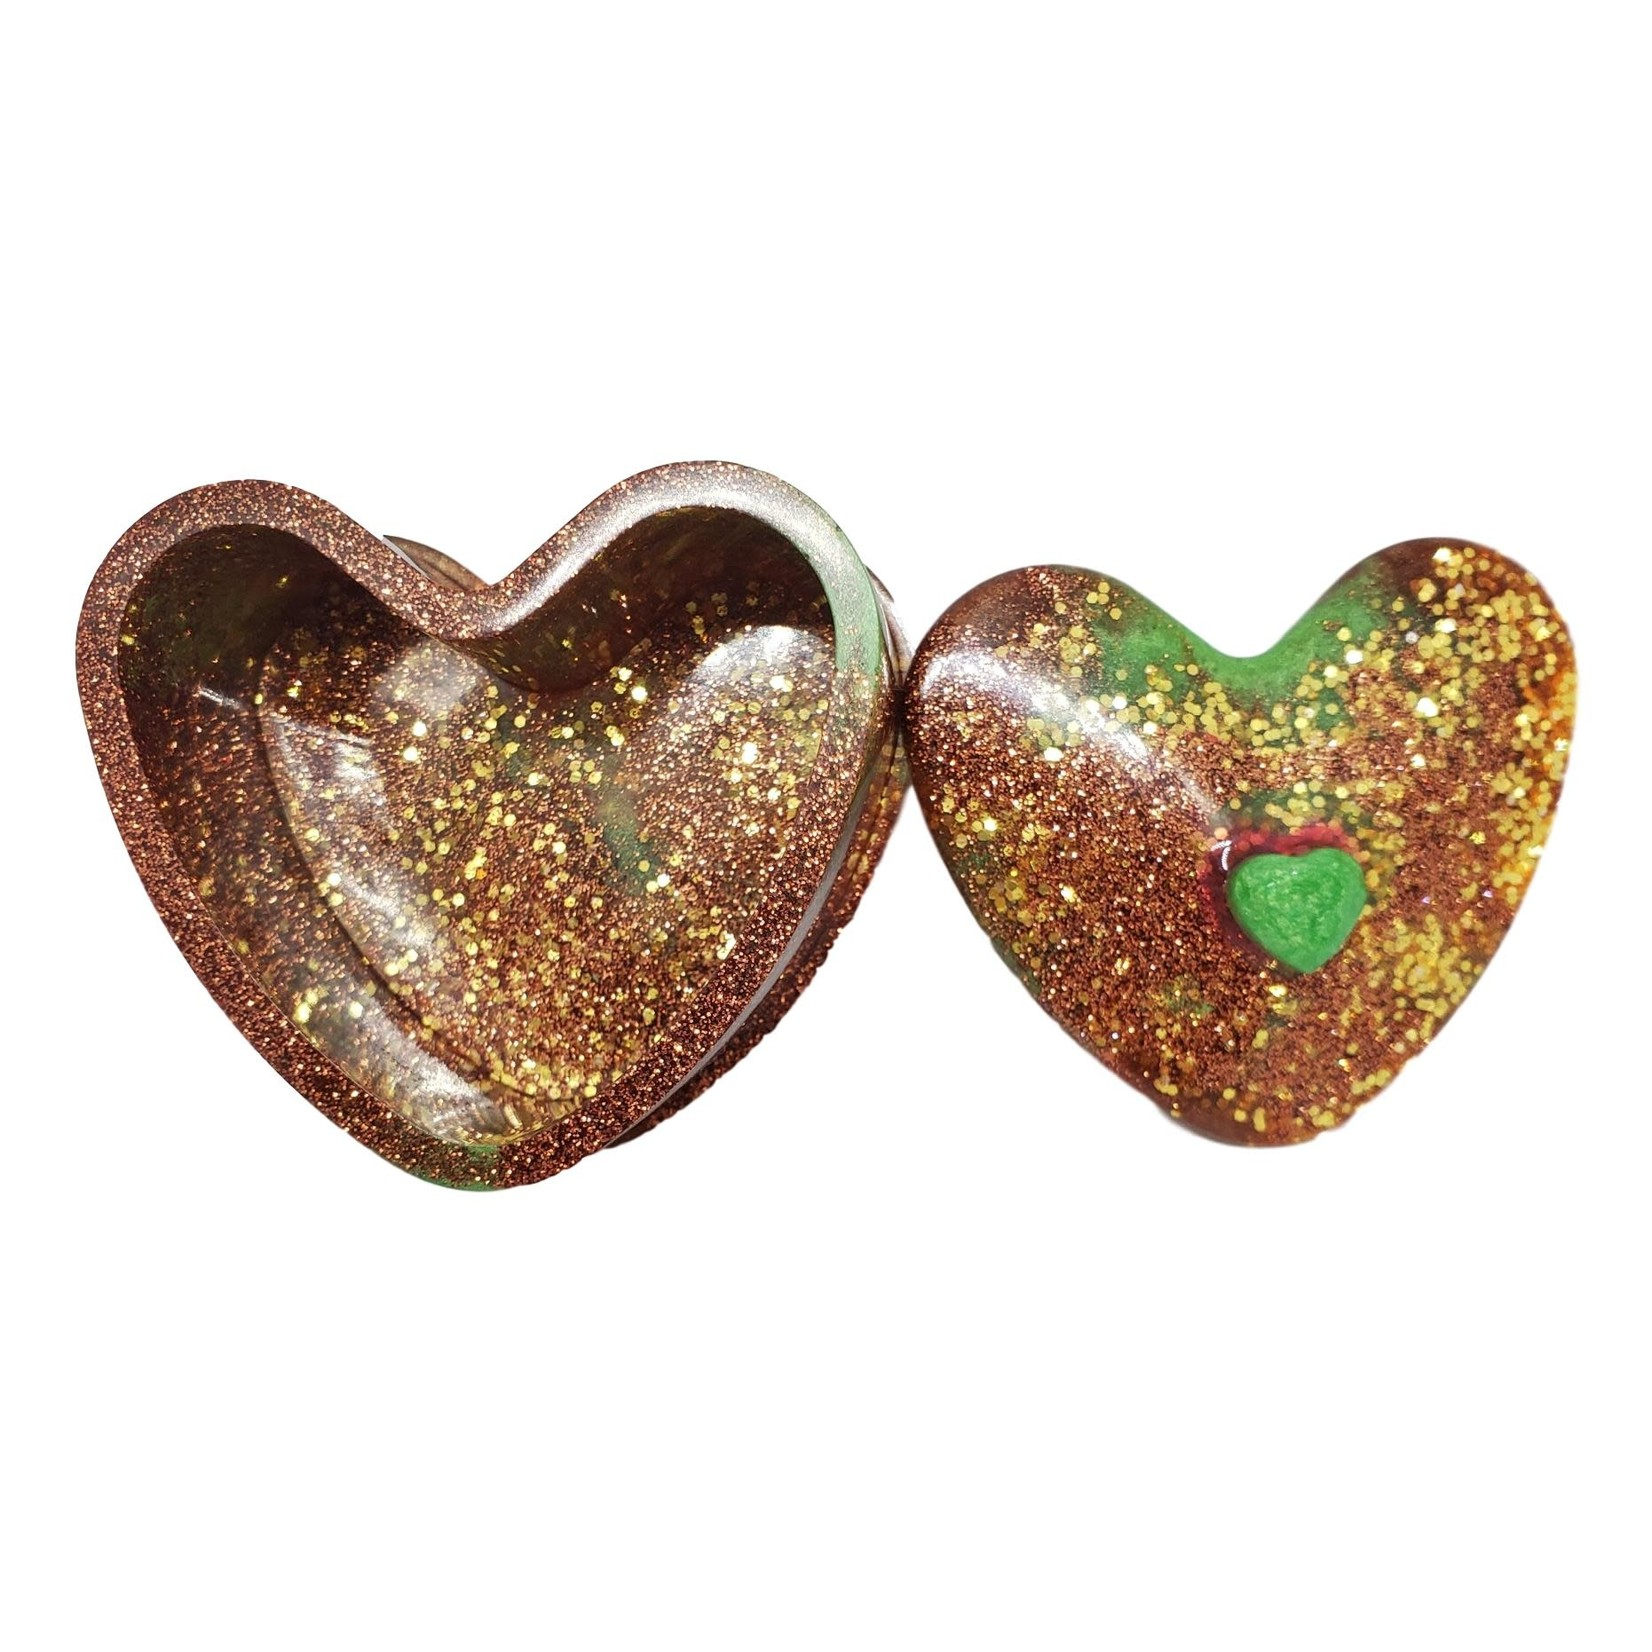 East Coast Sirens Gold, Copper with Hints of Green Heart Trinket Box